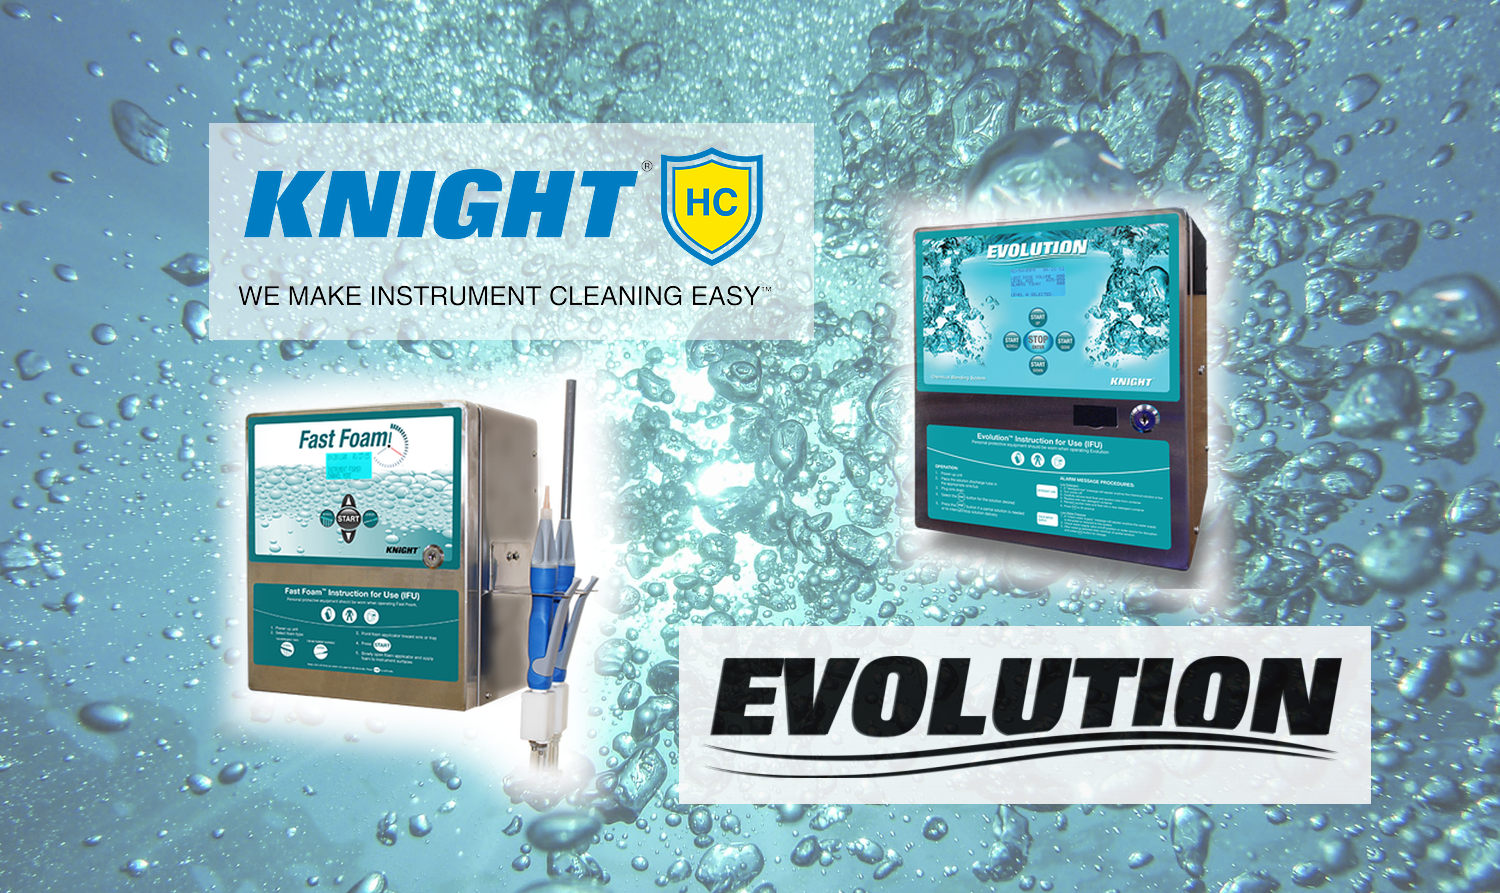 Fast Foam and Evolution Pumps from Knight Healthcare